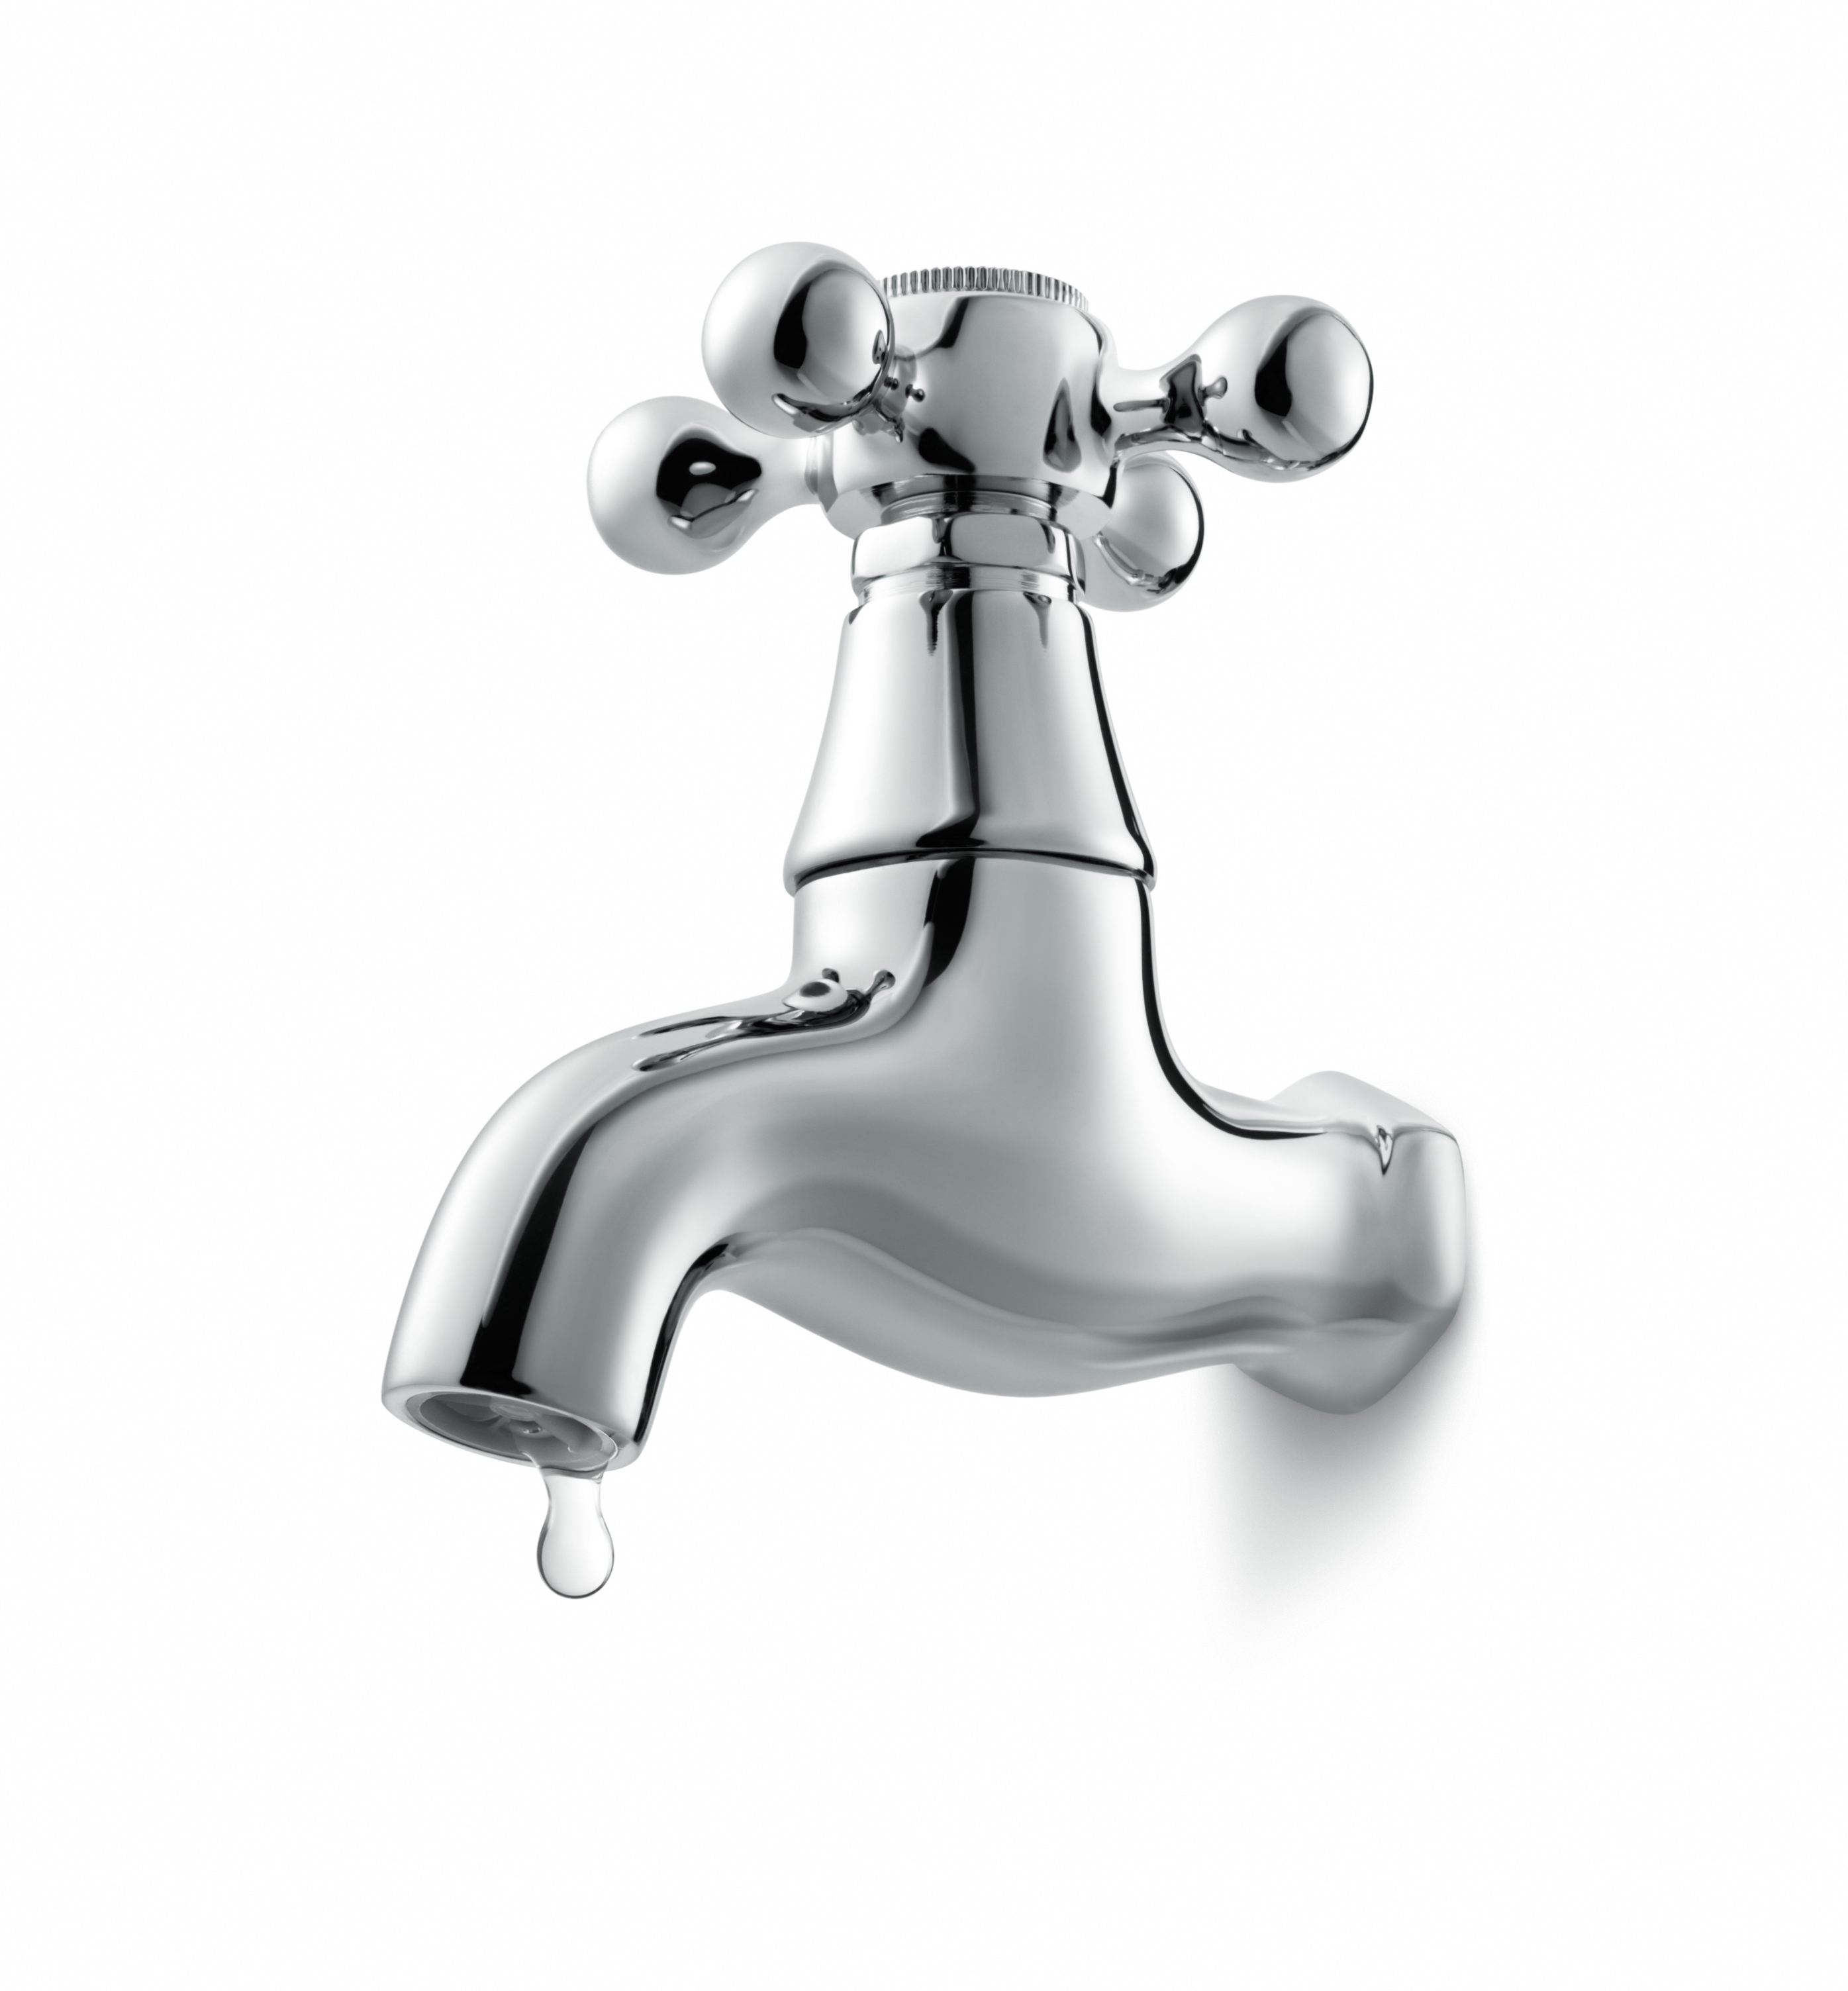 My Kitchen Faucet Is Leaking Leaking Faucet Cleanduscom